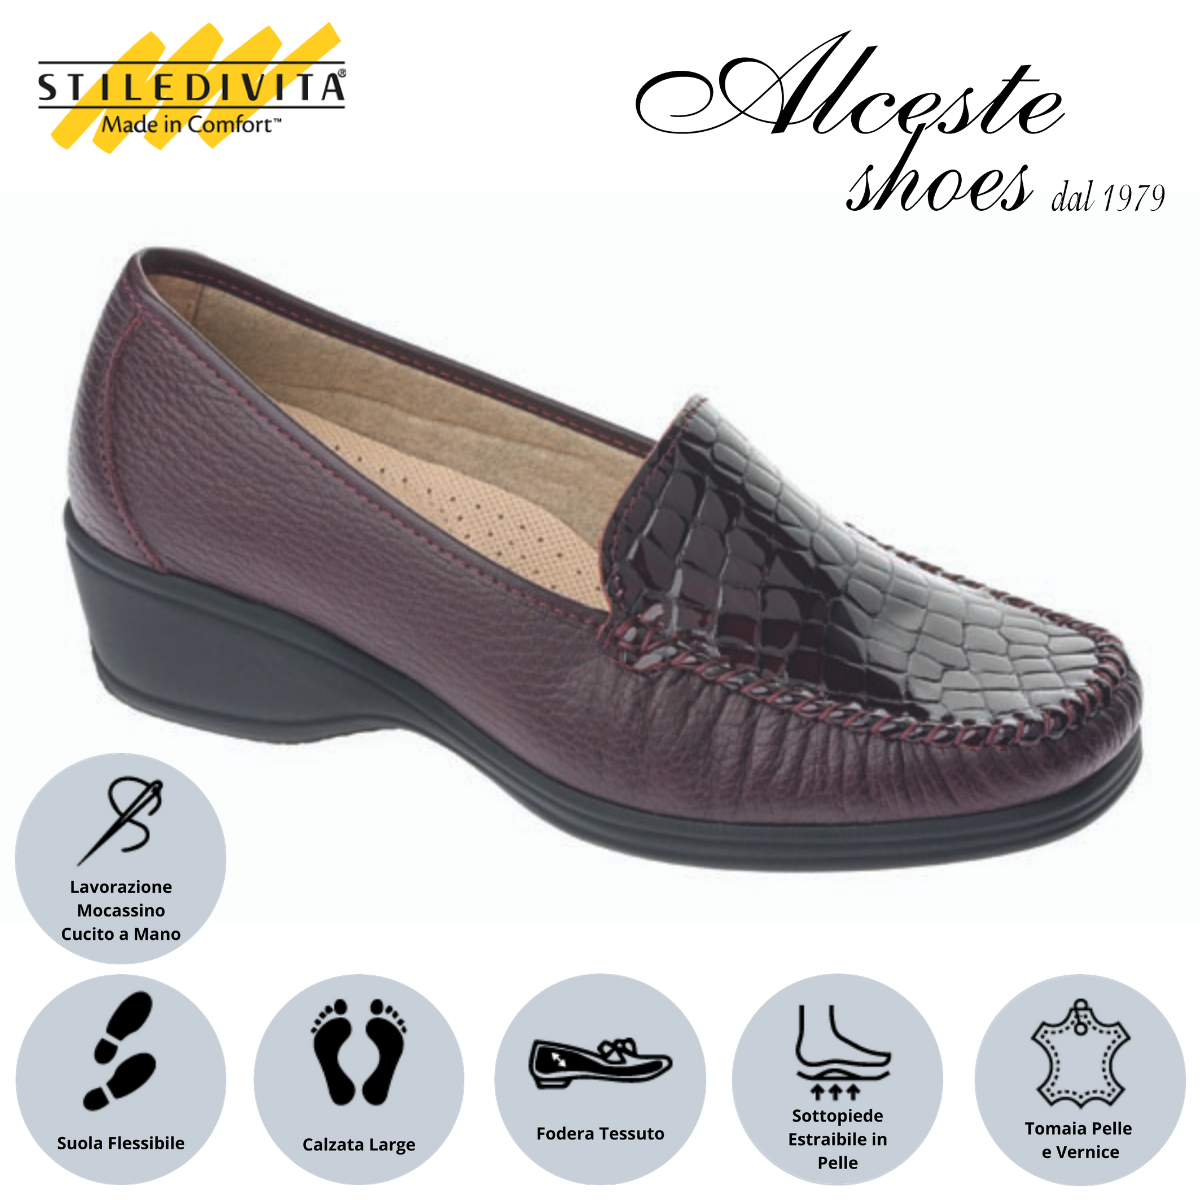 Mocassino Stiledivita art. 2377 bordò